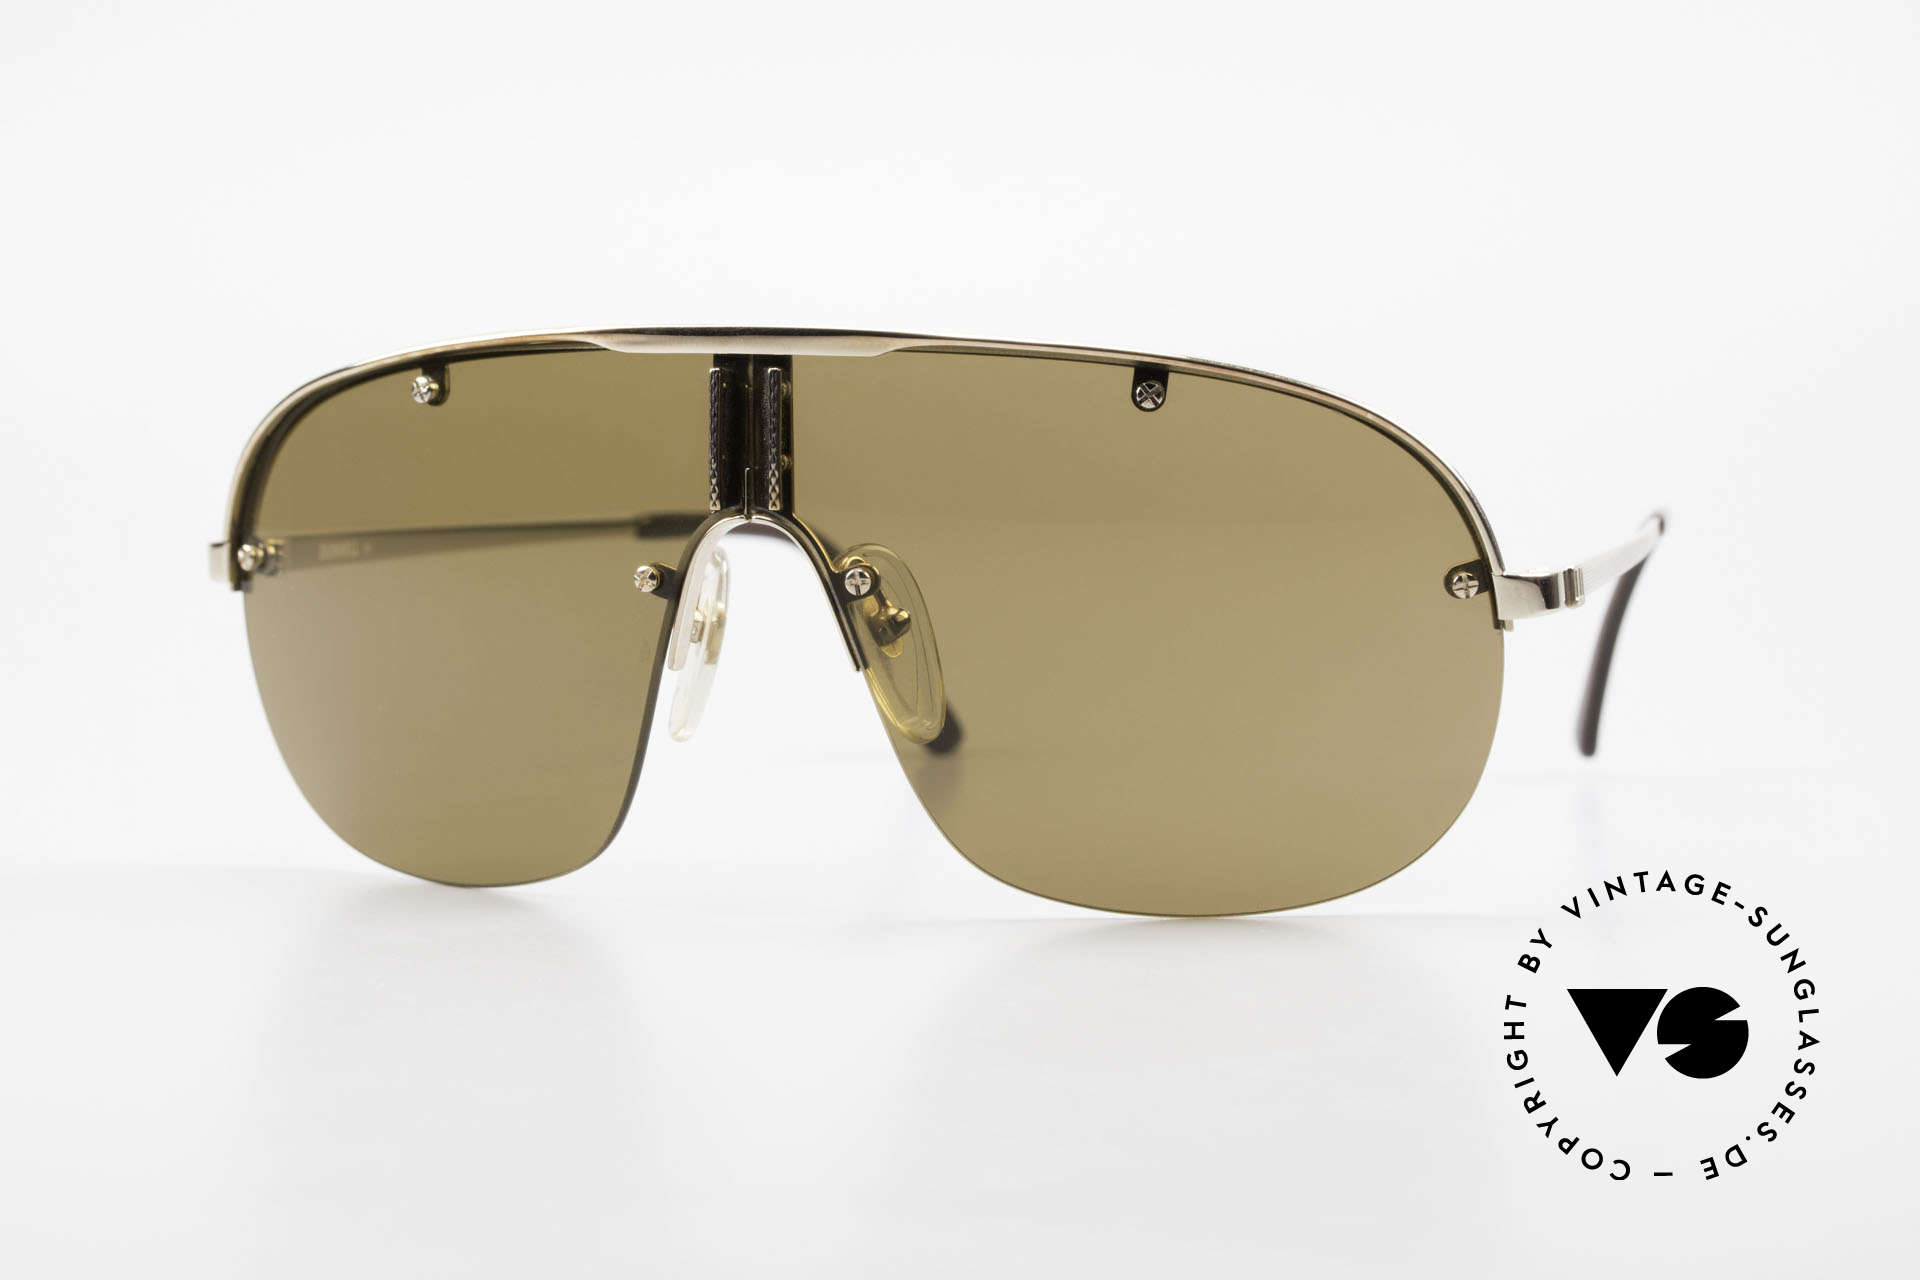 Dunhill 6102 90's Gentlemen's Sunglasses, stylish men's sunglasses by Alfred Dunhill from 1990, Made for Men